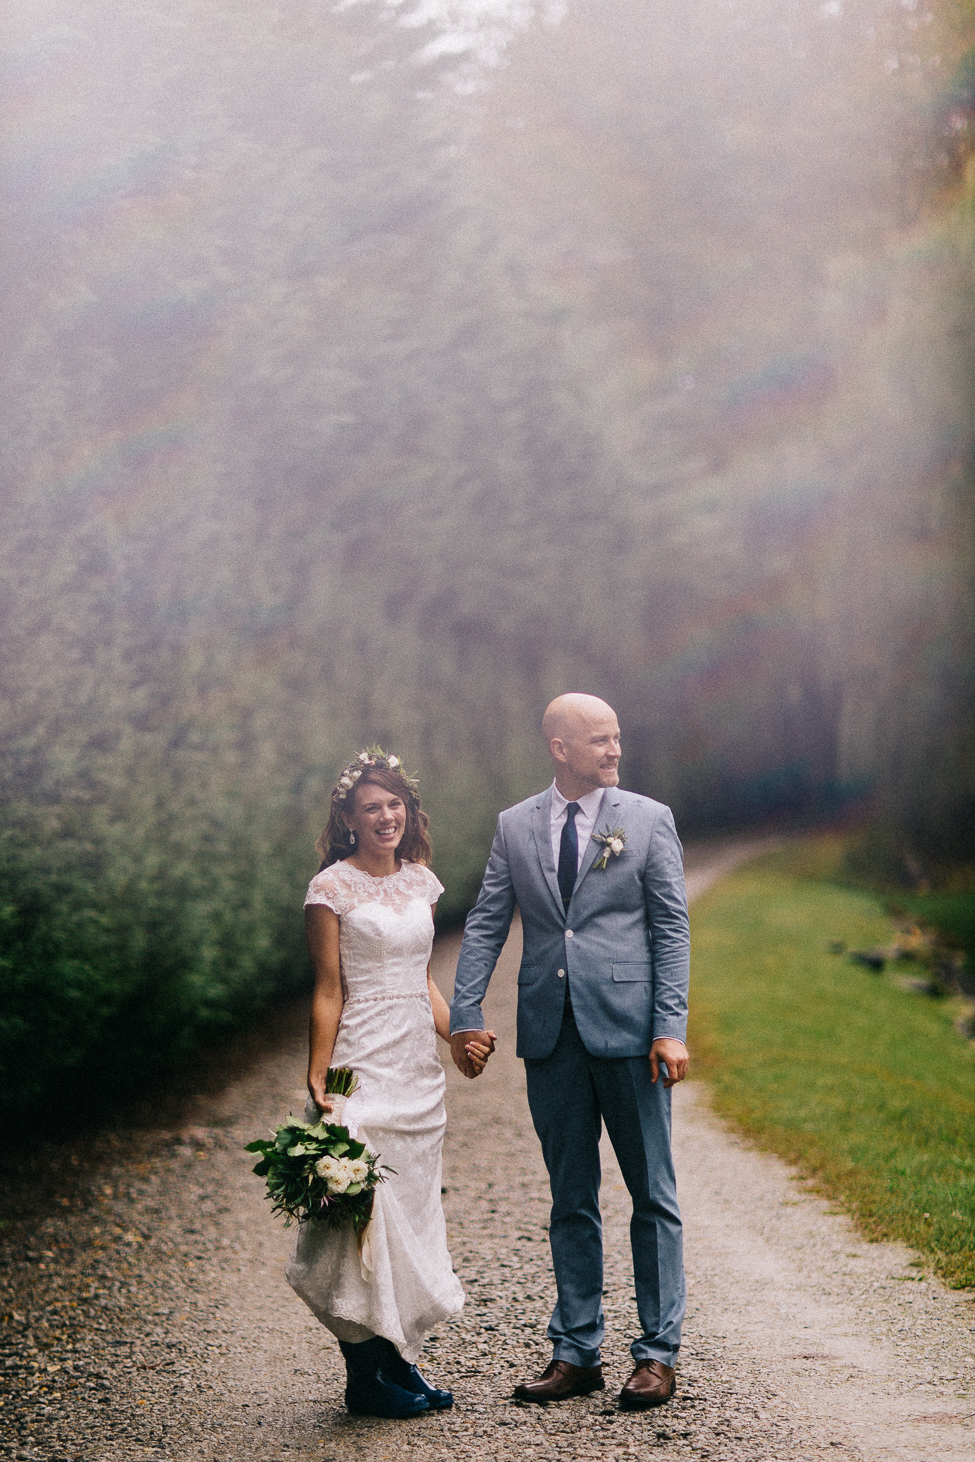 An adventurous couple gets married in Asheville, North Carolina.